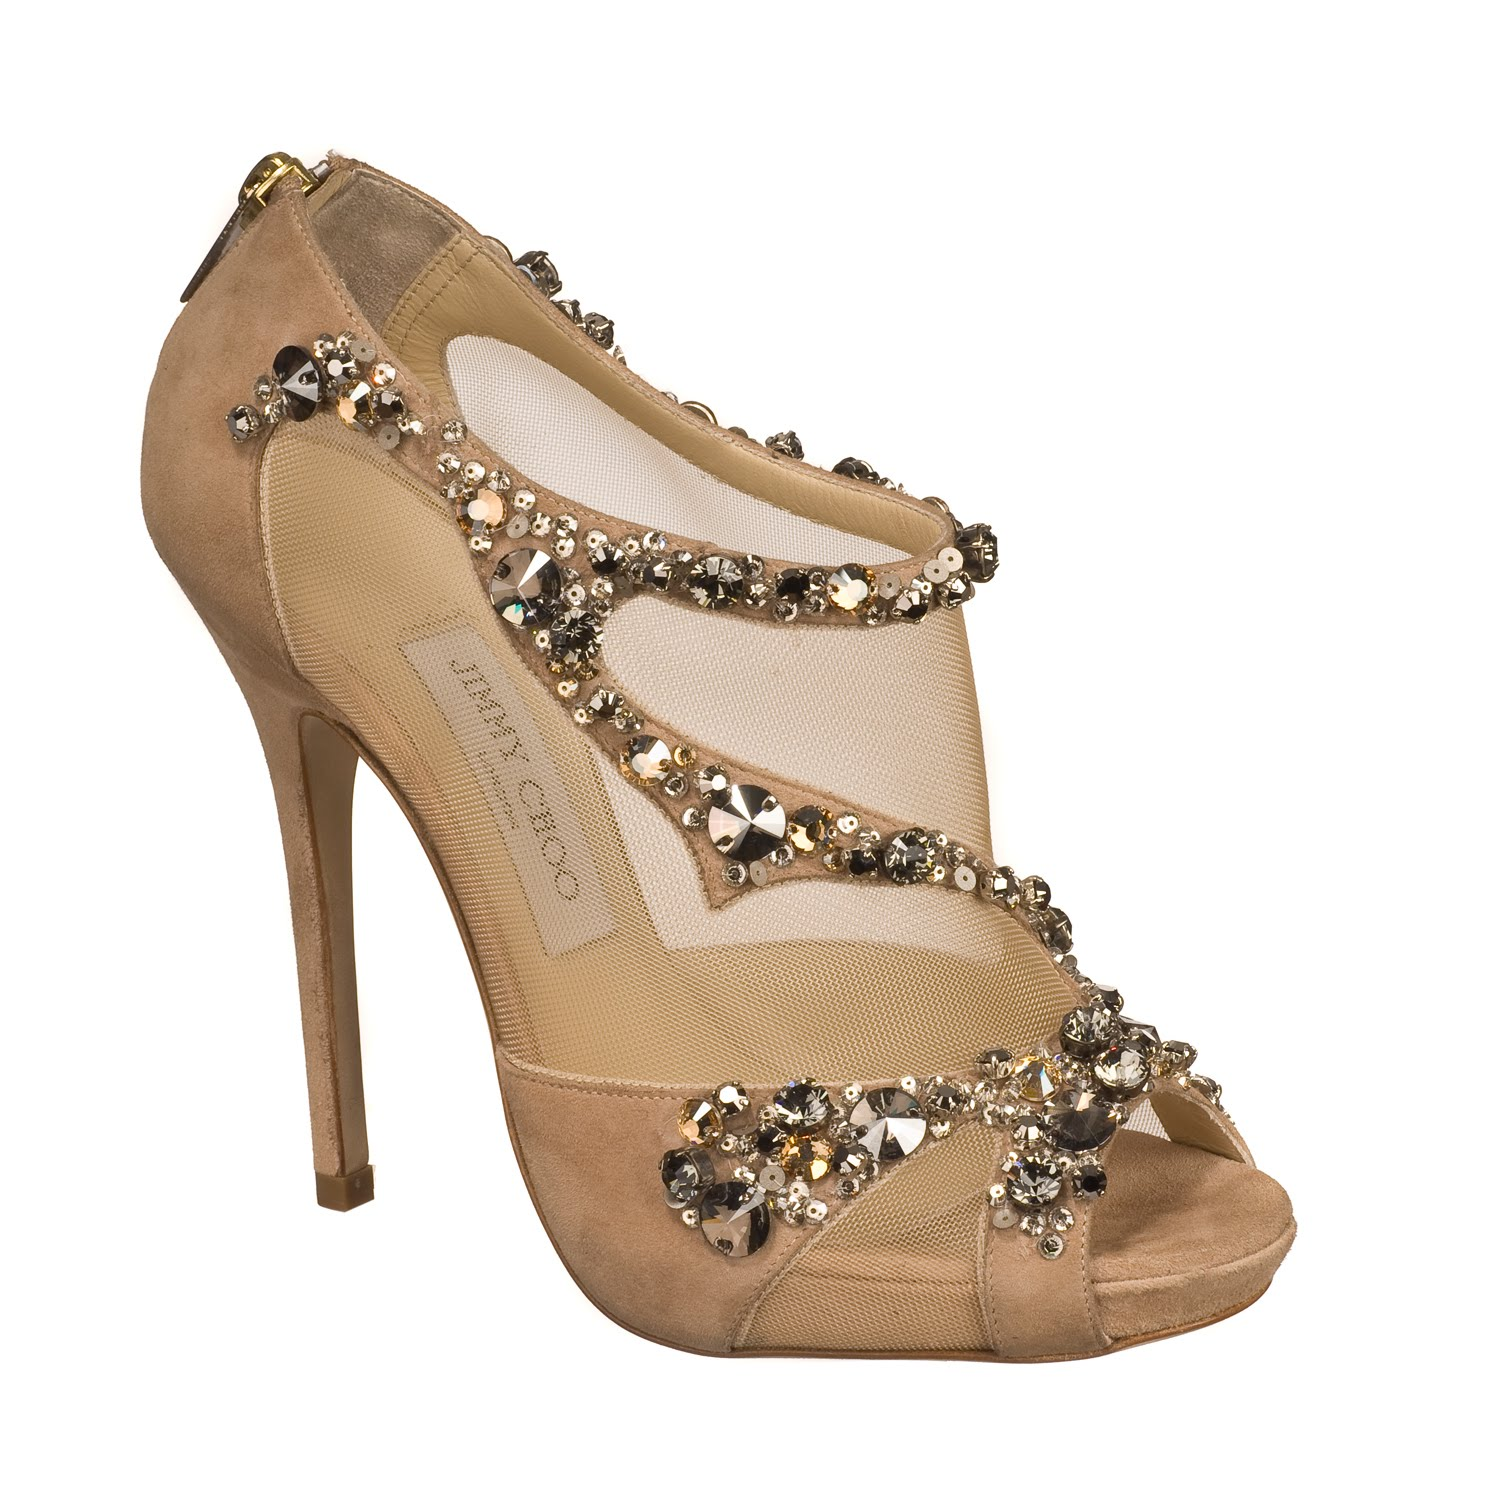 Jimmy Choo. Founded in London as a bespoke atelier, Jimmy Choo is a 21st century luxury accessories brand with shoes at its heart. A pioneer in the art of celebrity dressing, it was among the first to bring shoes and handbags to Hollywood, where the red carpet proved to be the ideal runway.